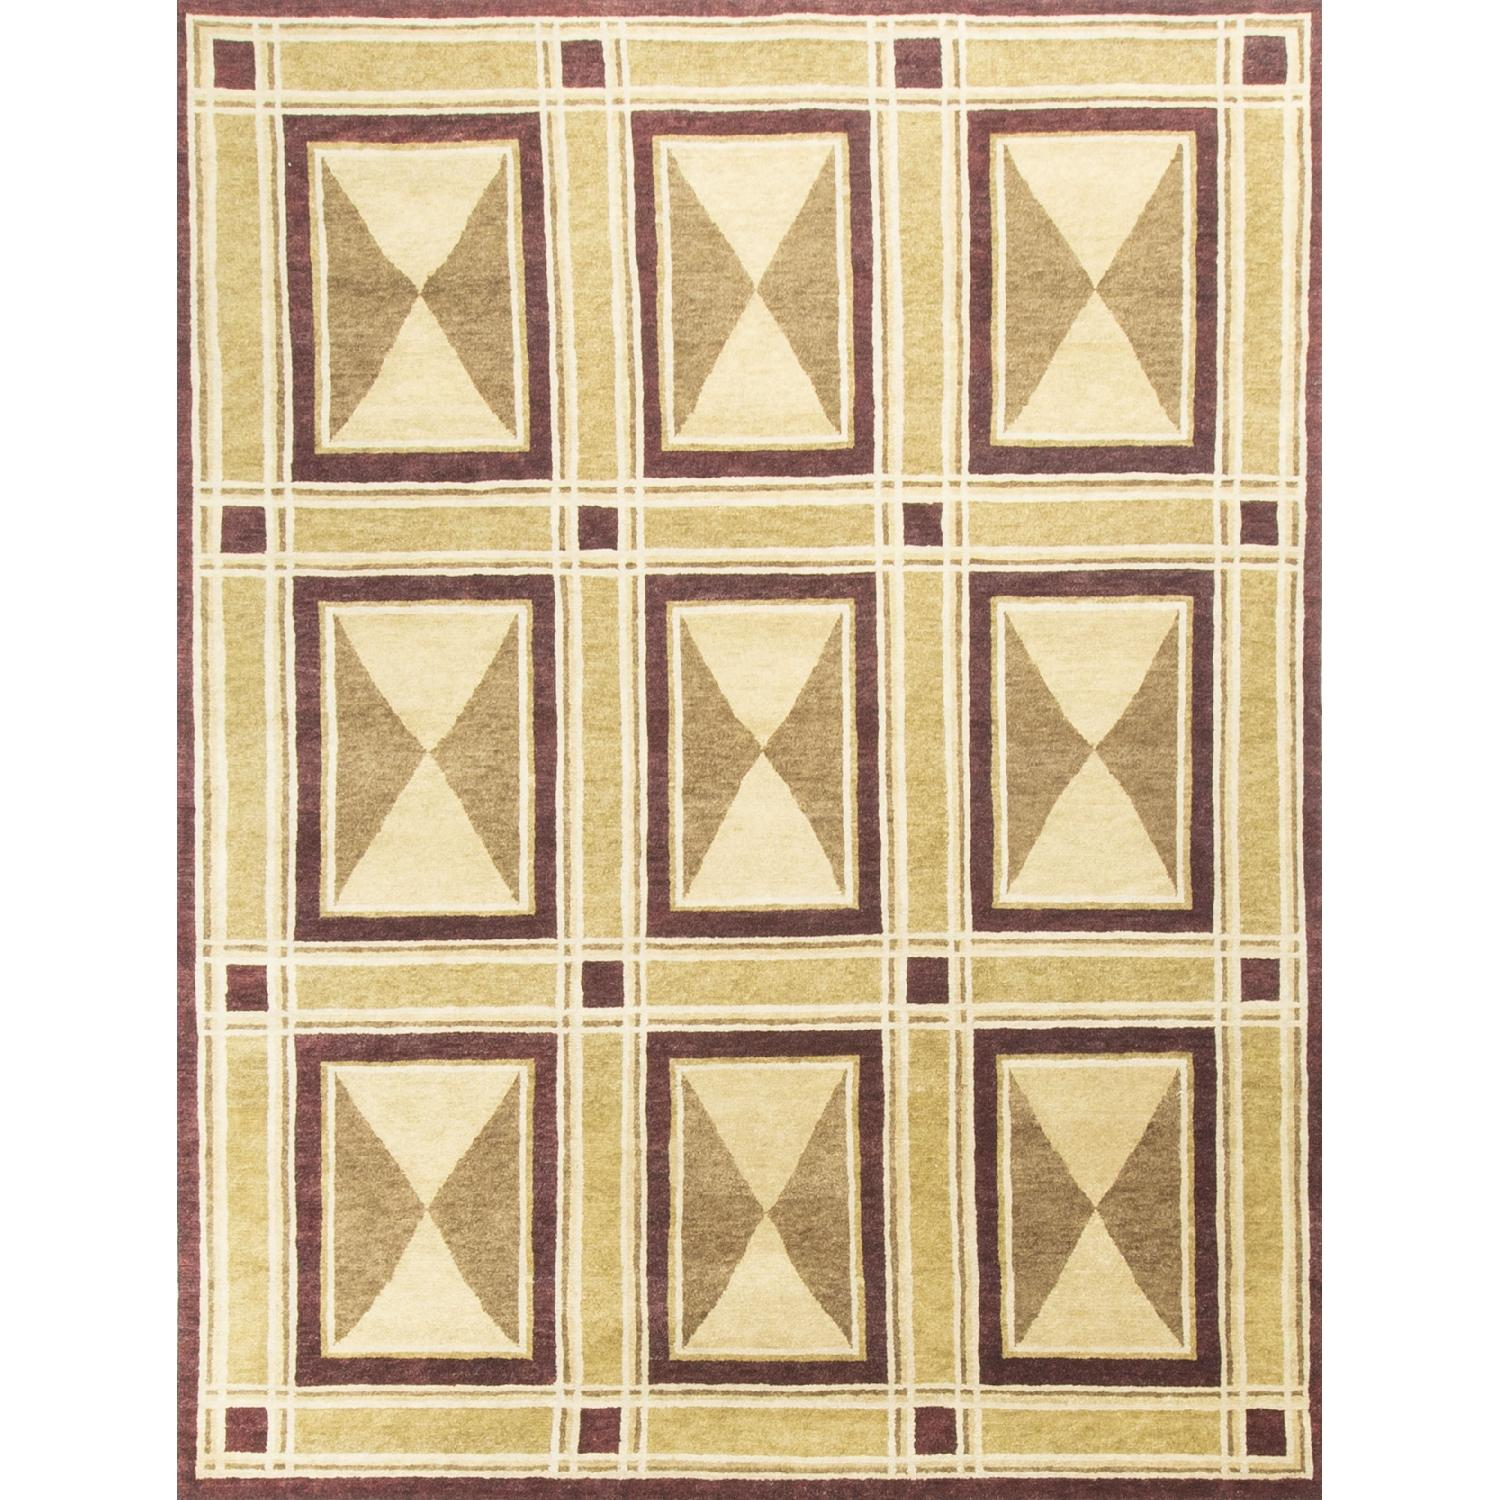 Modern Contemporary Hand Knotted Wool Rug in Beige/Red - image-0